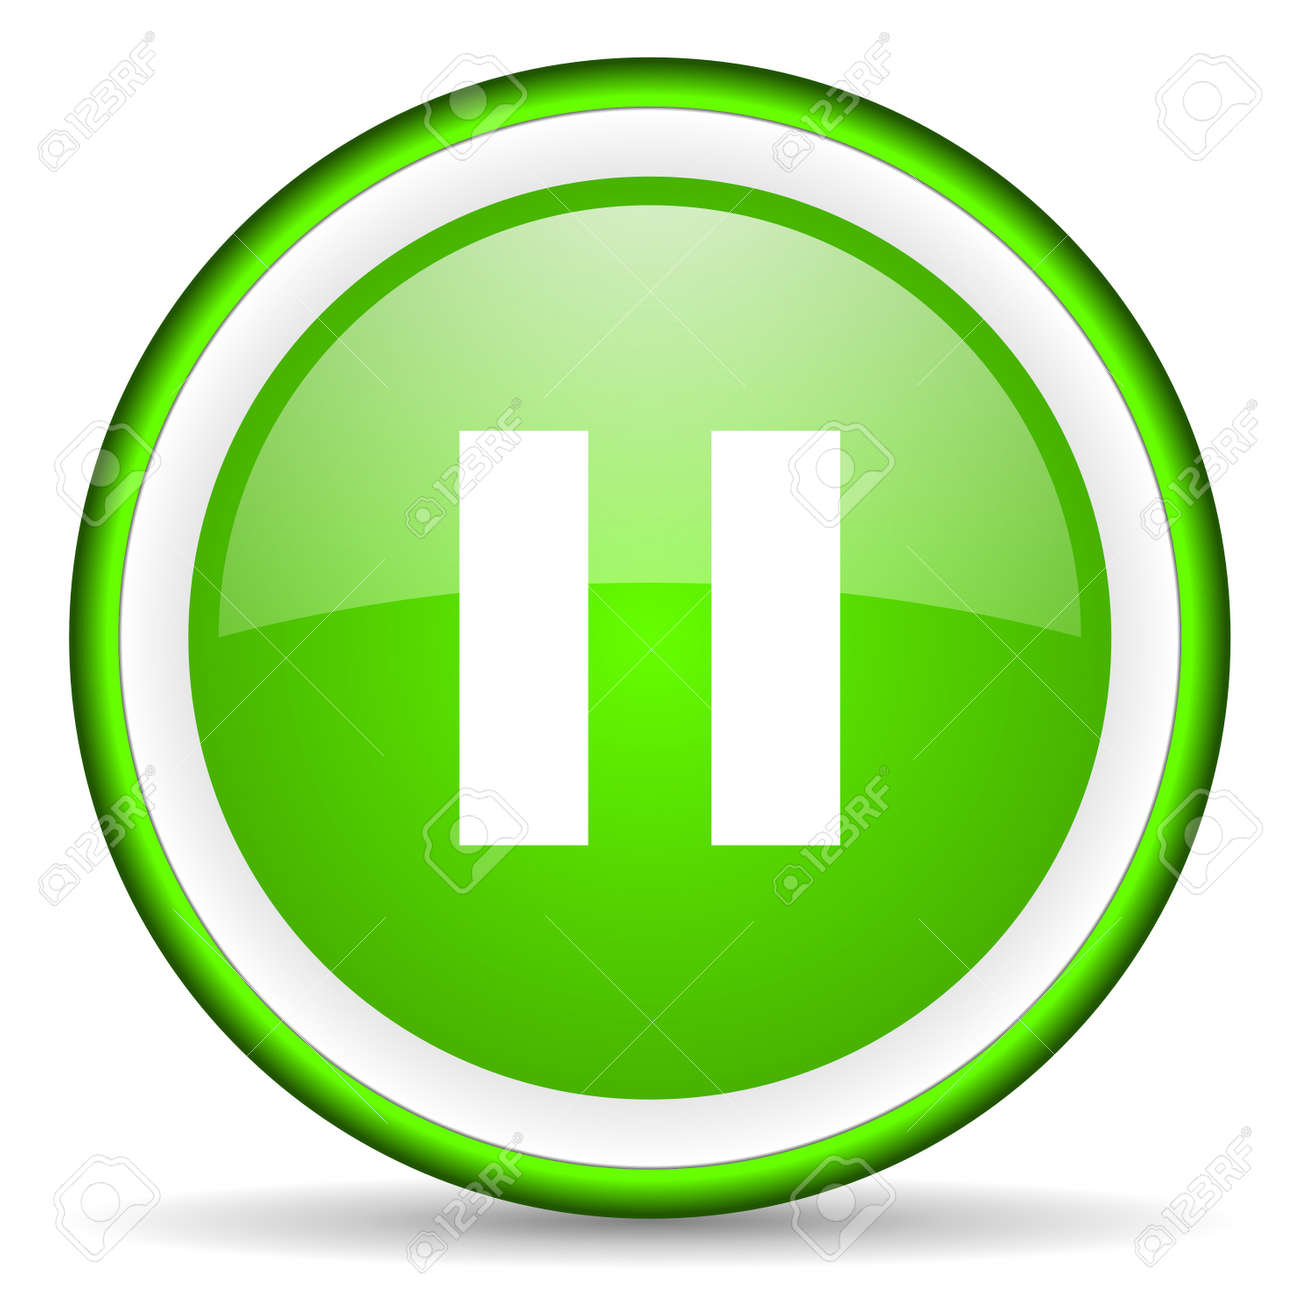 pause green glossy icon on white background Stock Photo - 16622730